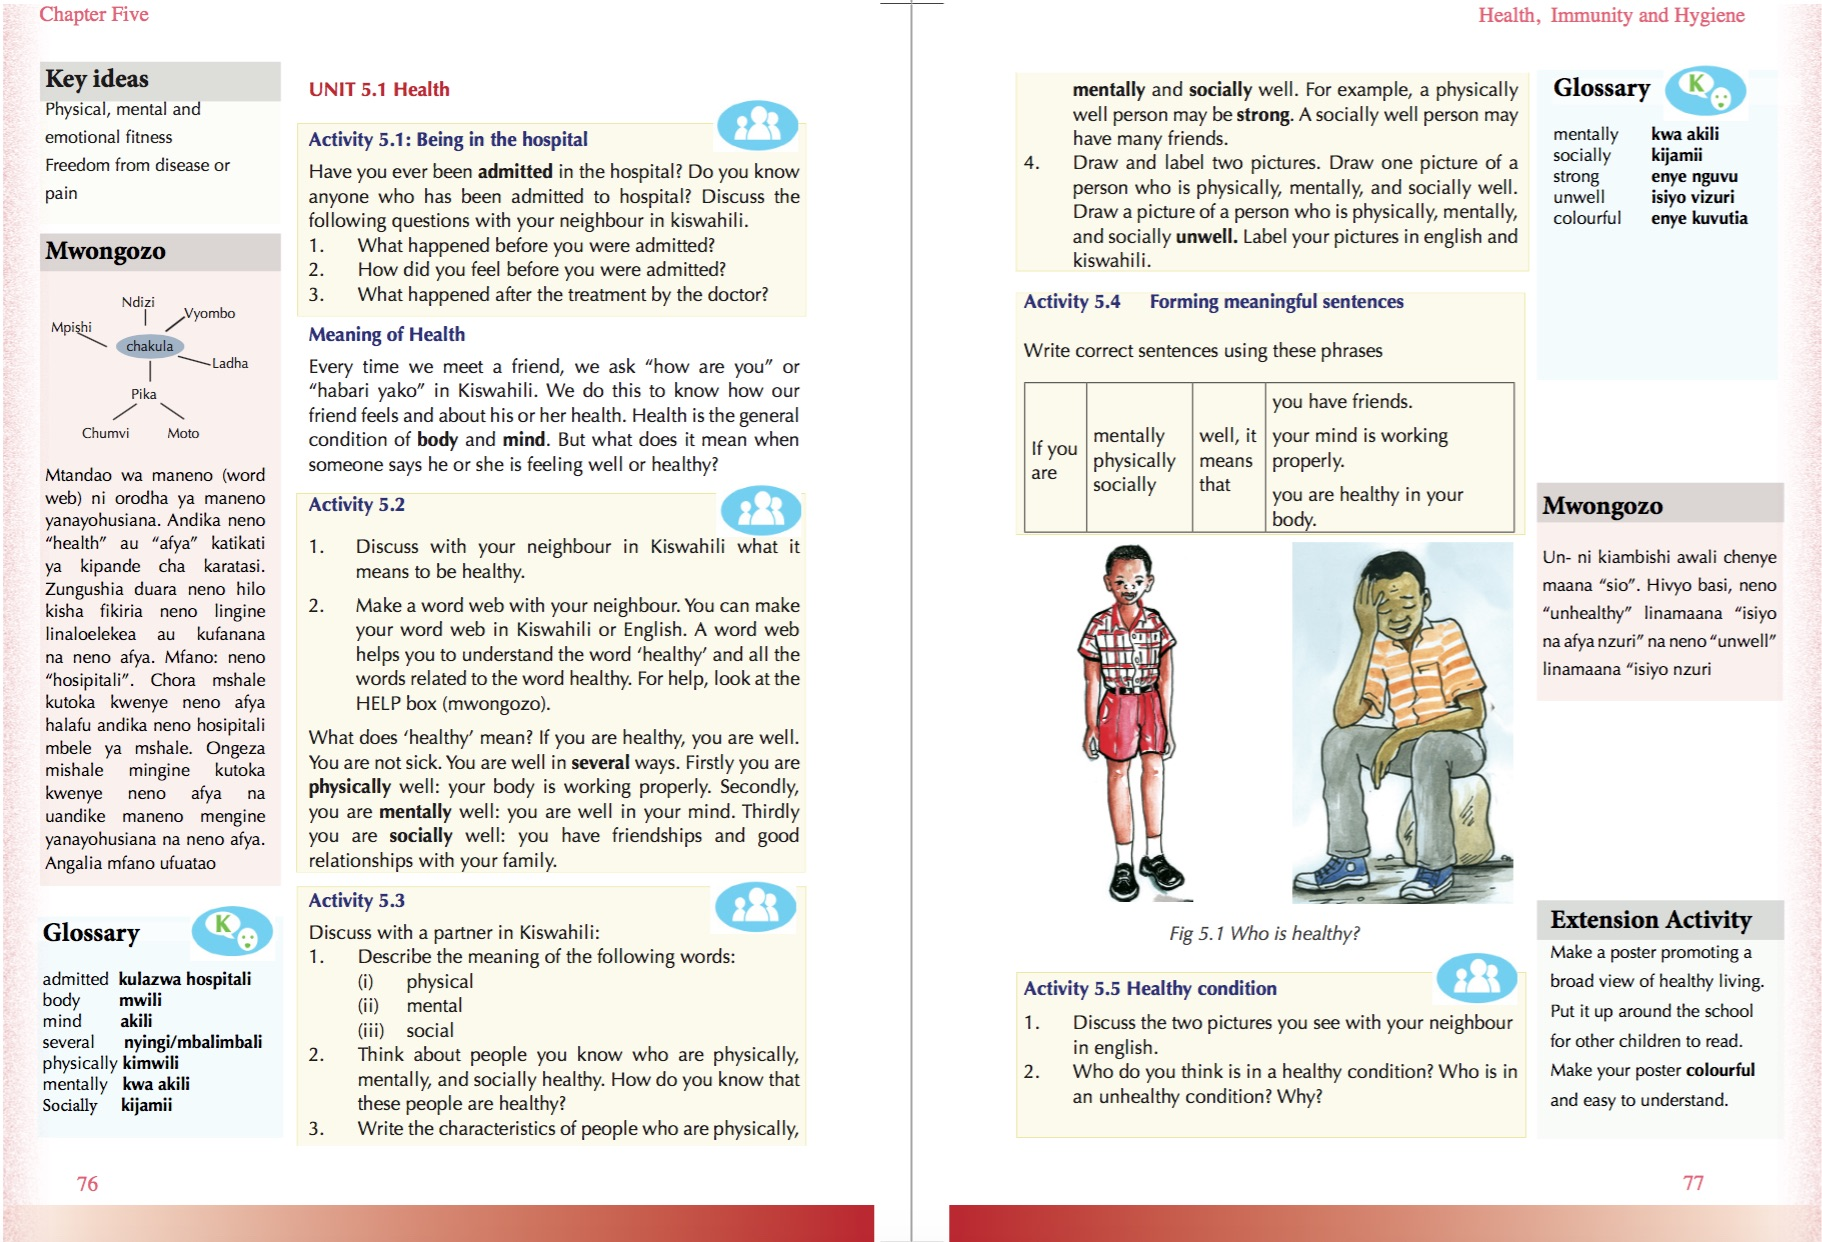 The textbook is written in simple sentences in english to make it easy to understand